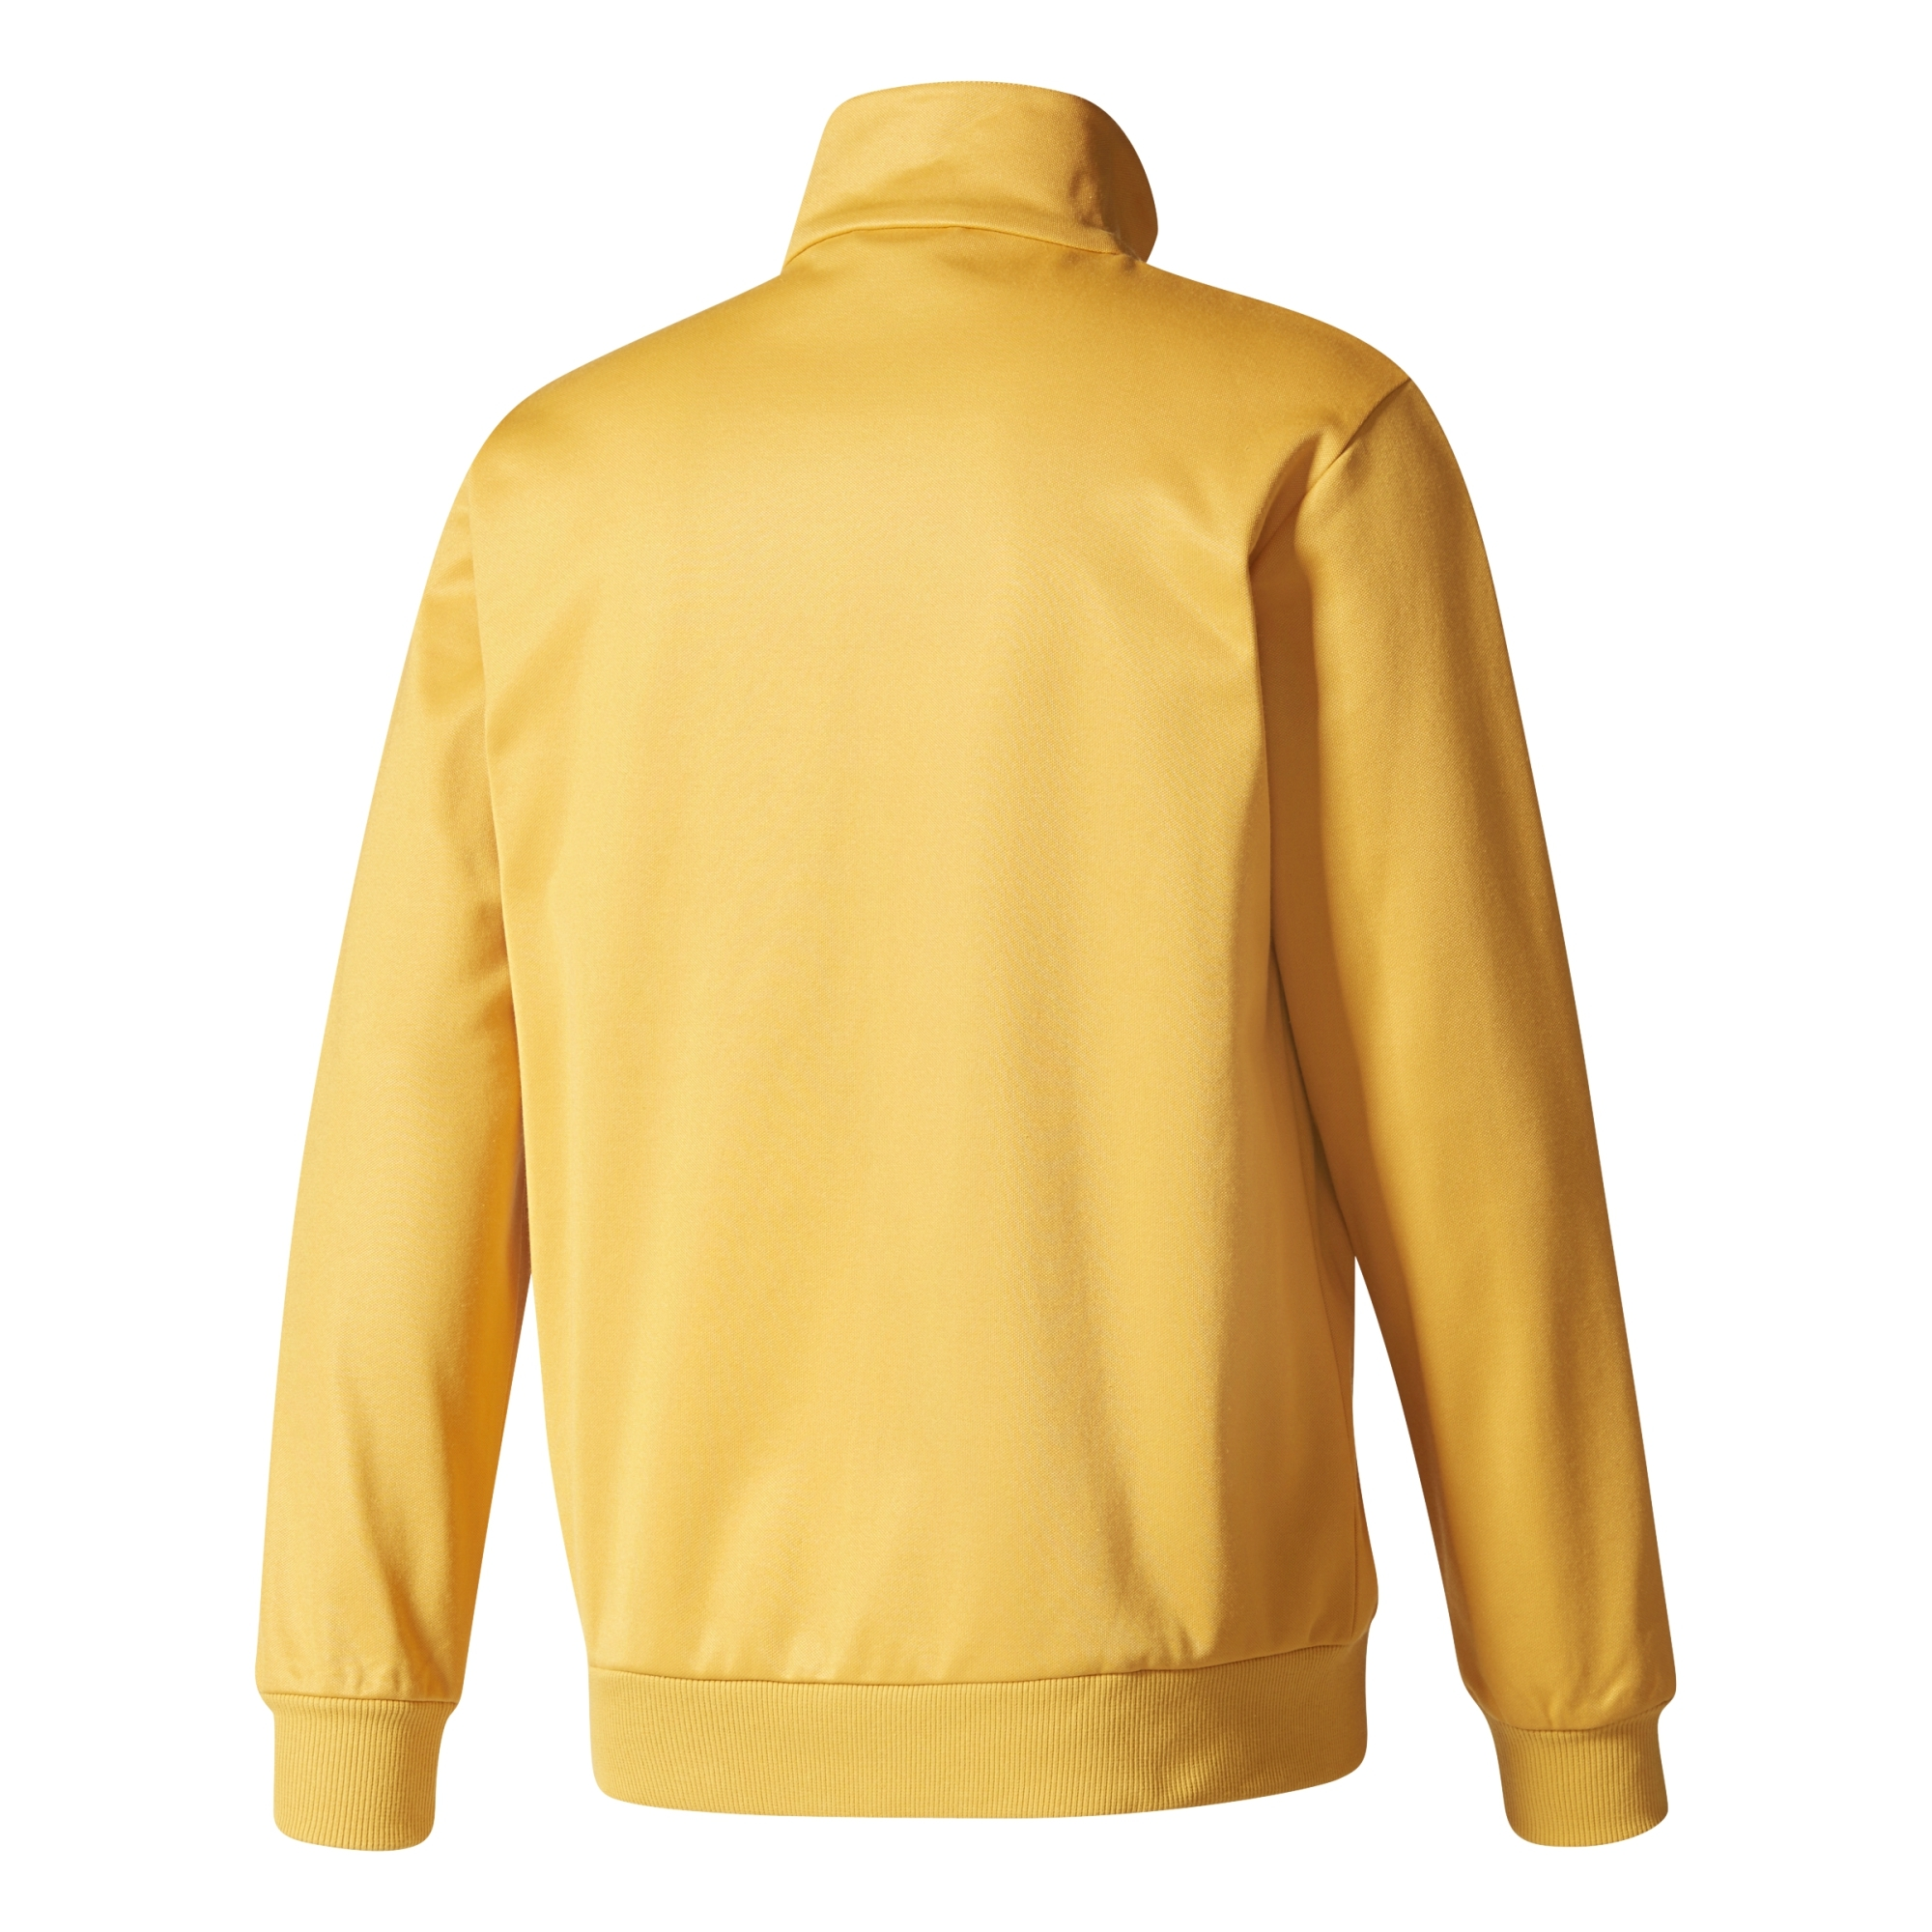 Adidas Originals Beckenbauer Track Top (tactile yellow)